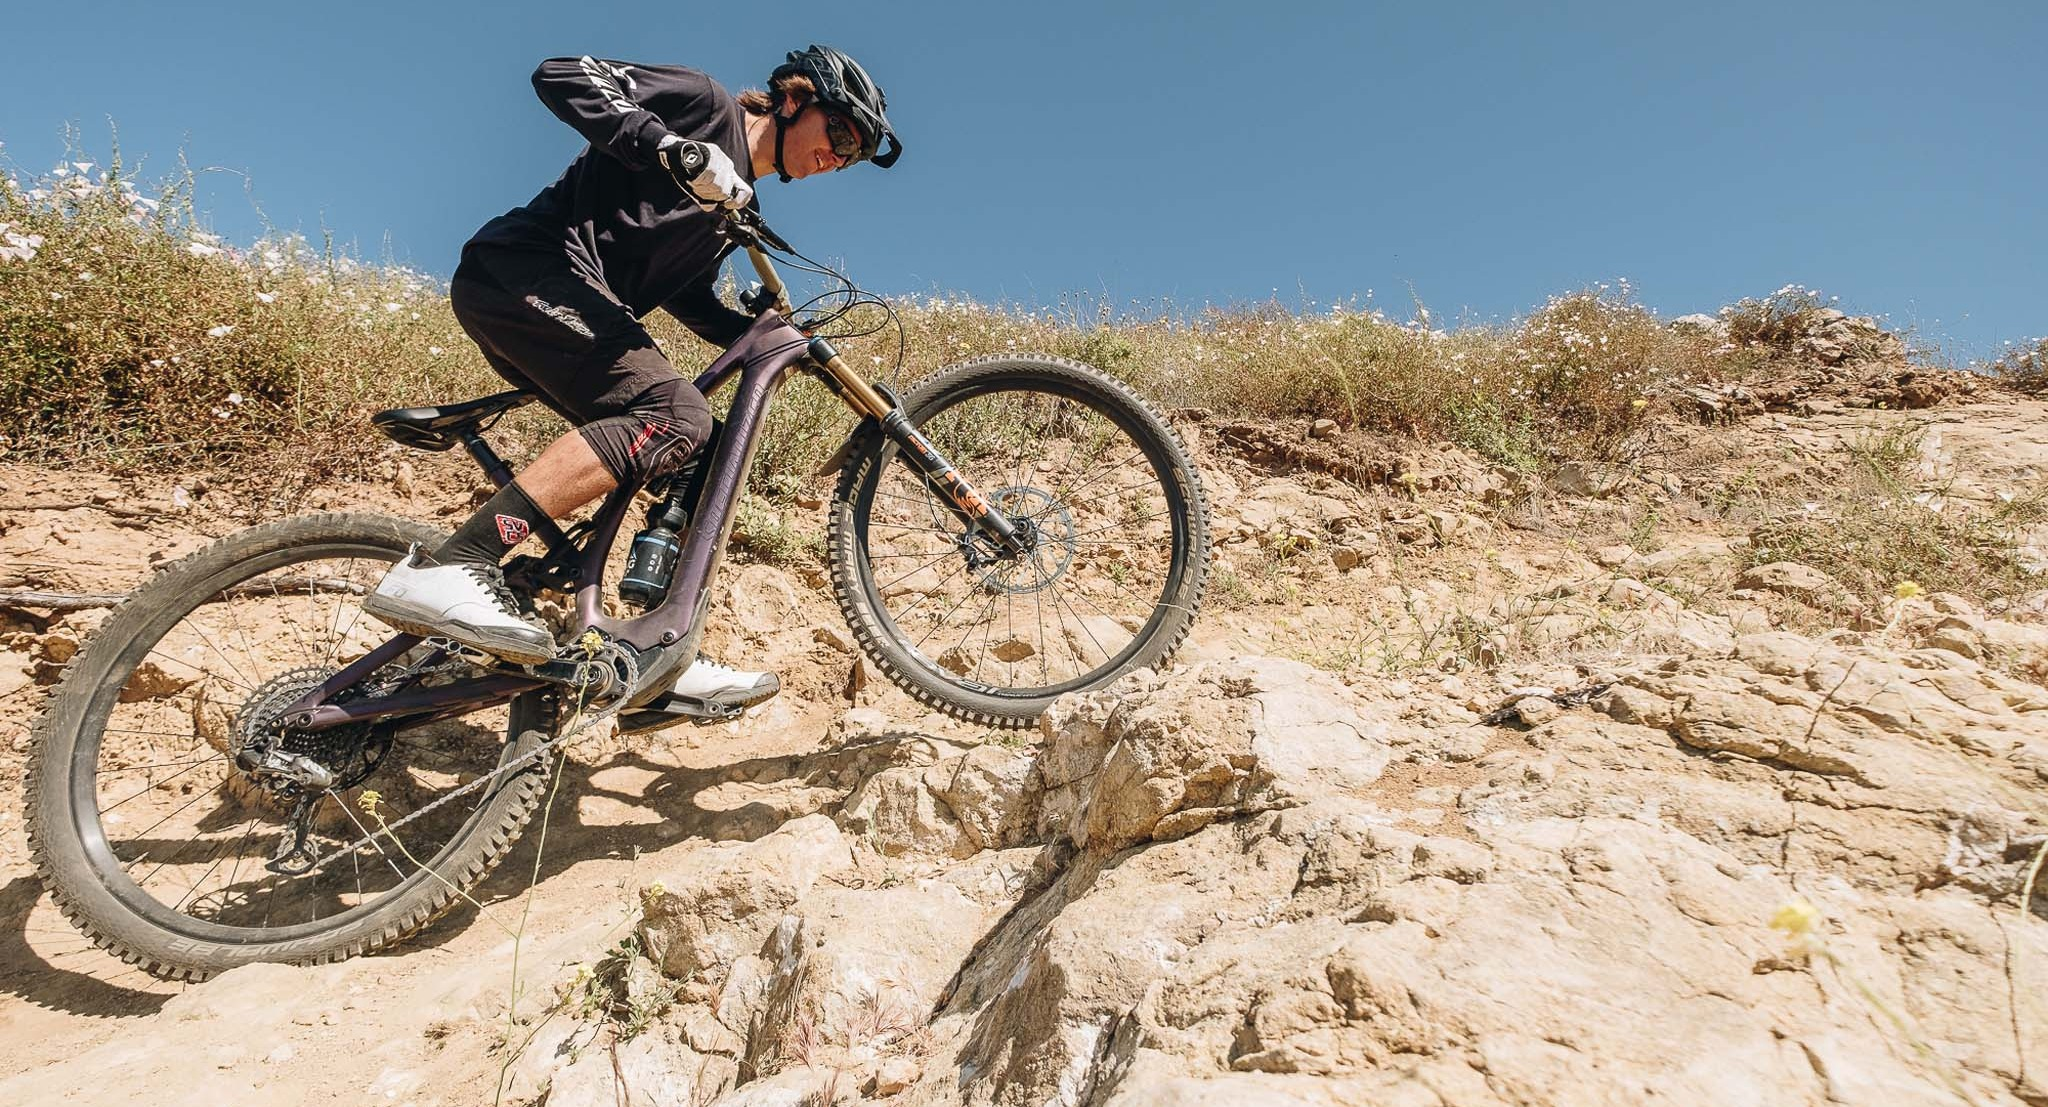 A mountain bike rides over rocks on a trail